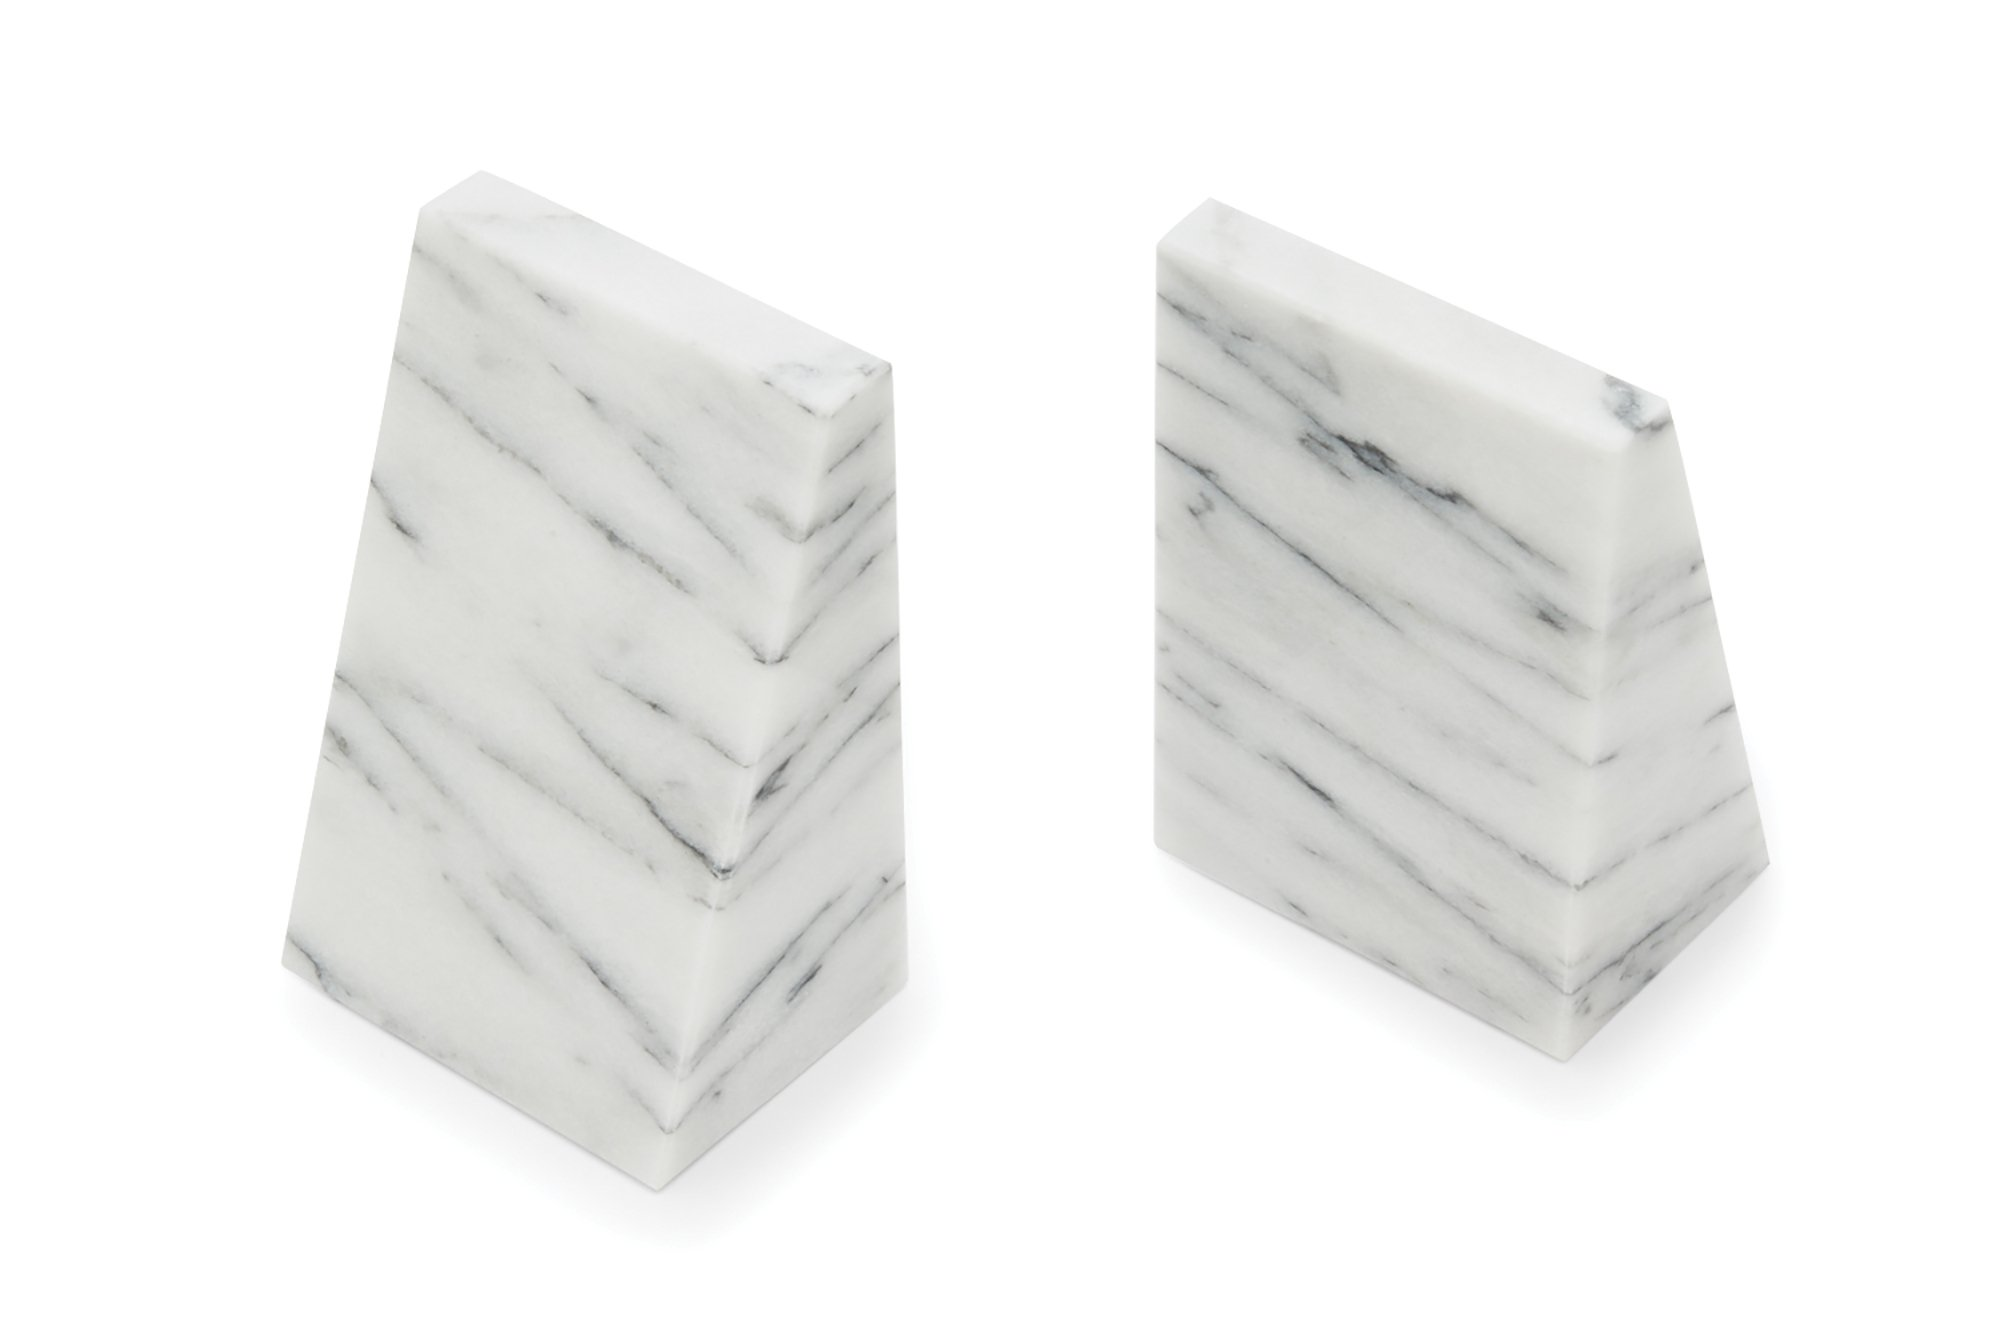 Fox Run Triangular 100% Natural Polished White Marble Bookends by Fox Run